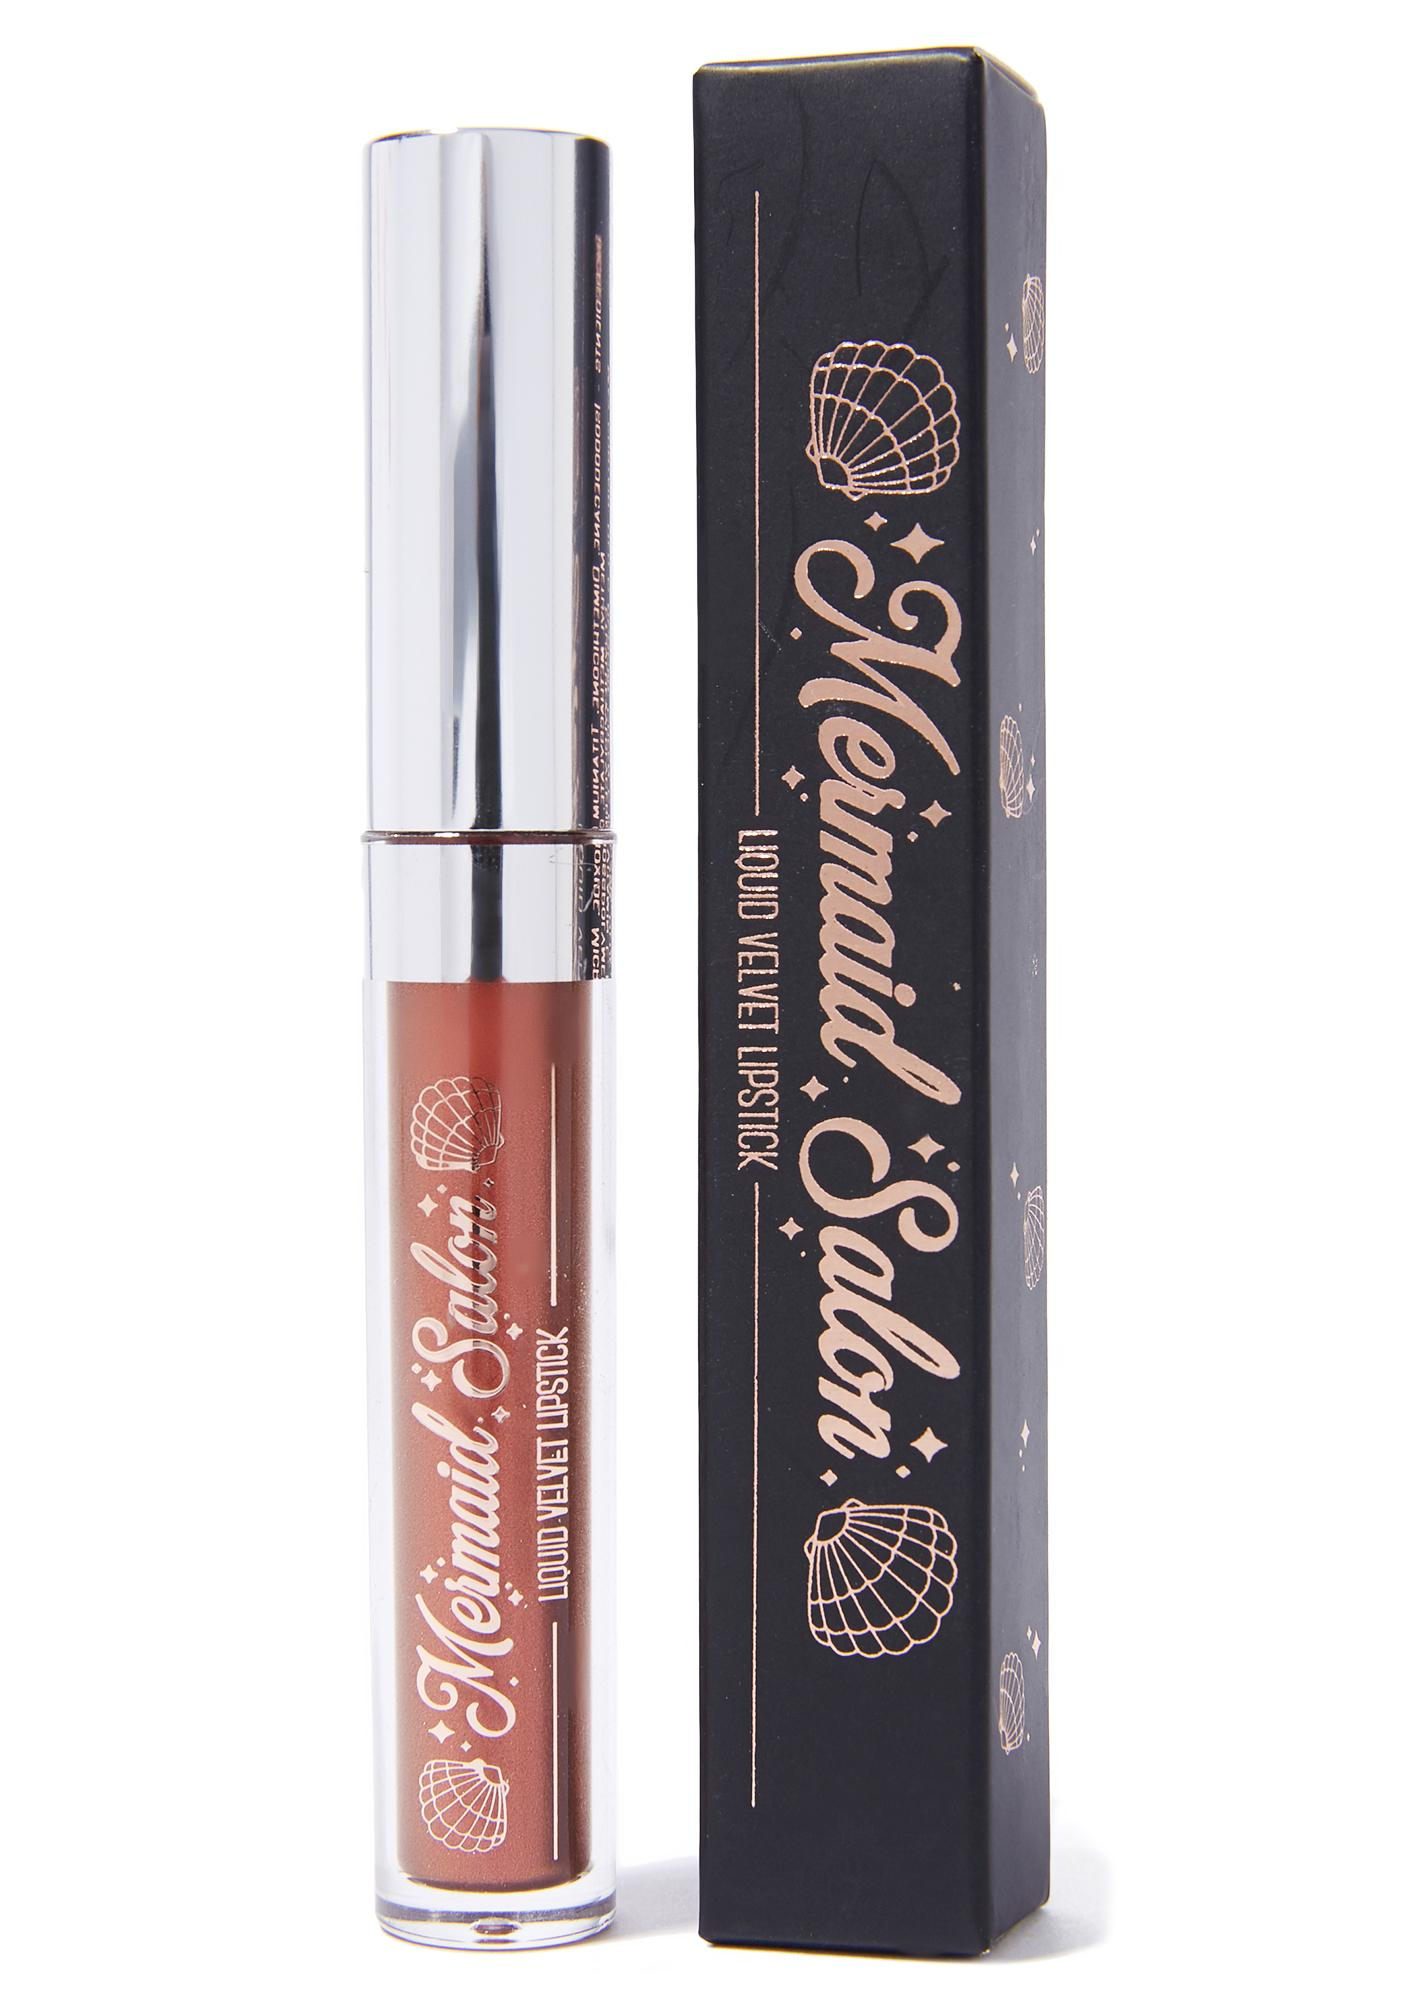 Mermaid Salon Coco & Co Metallic Liquid Lipstick